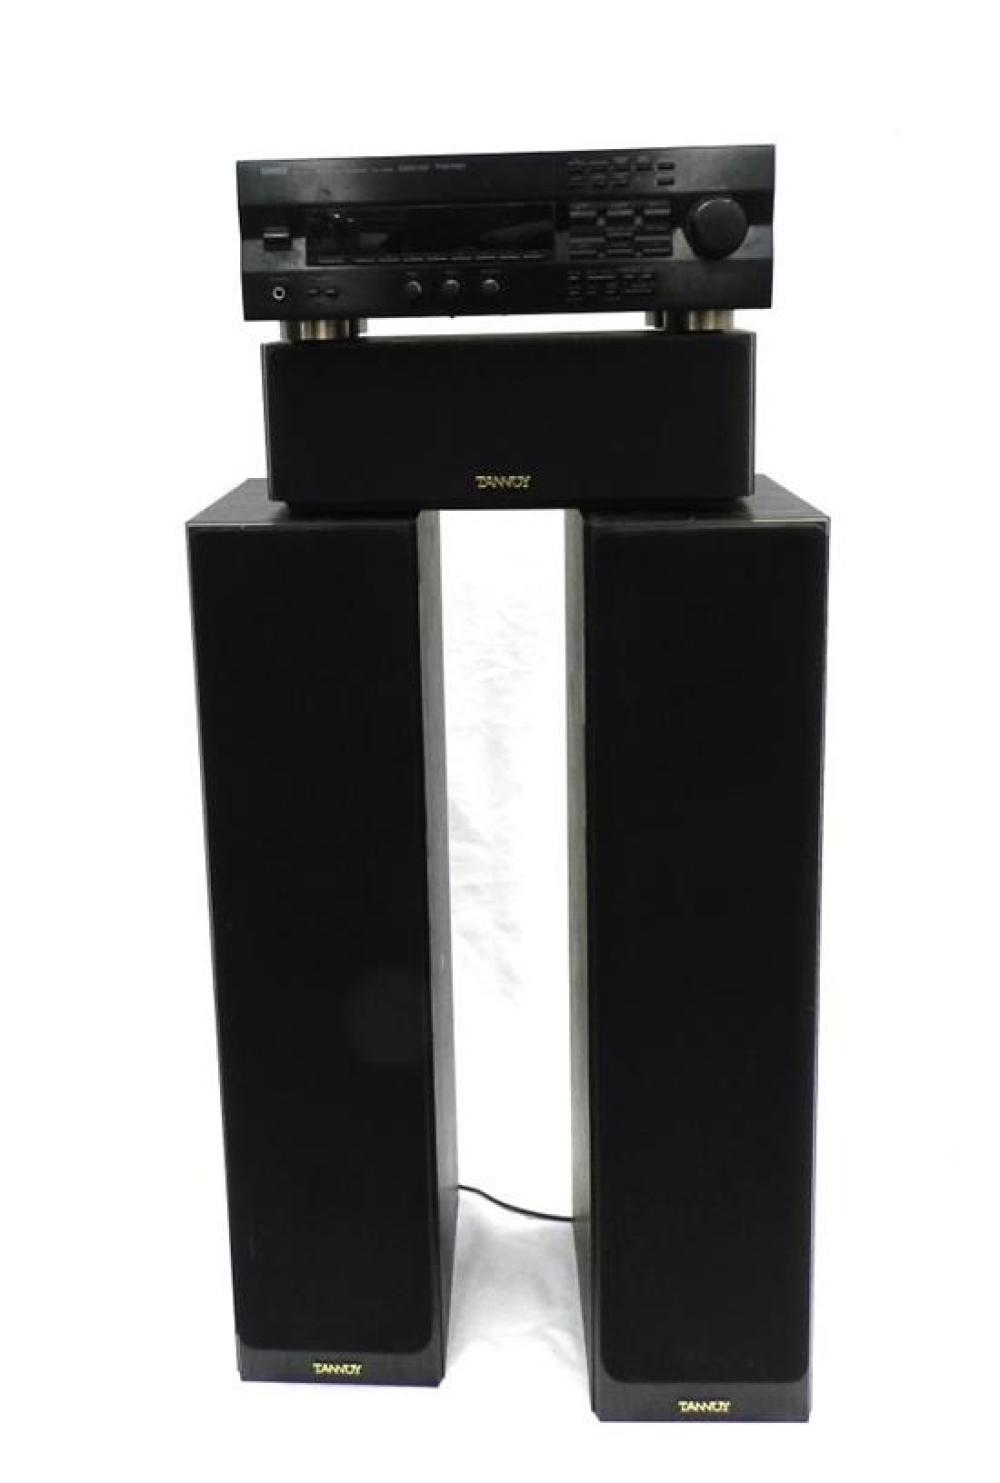 A Tannoy Speaker System with a Yamaha Amplifier